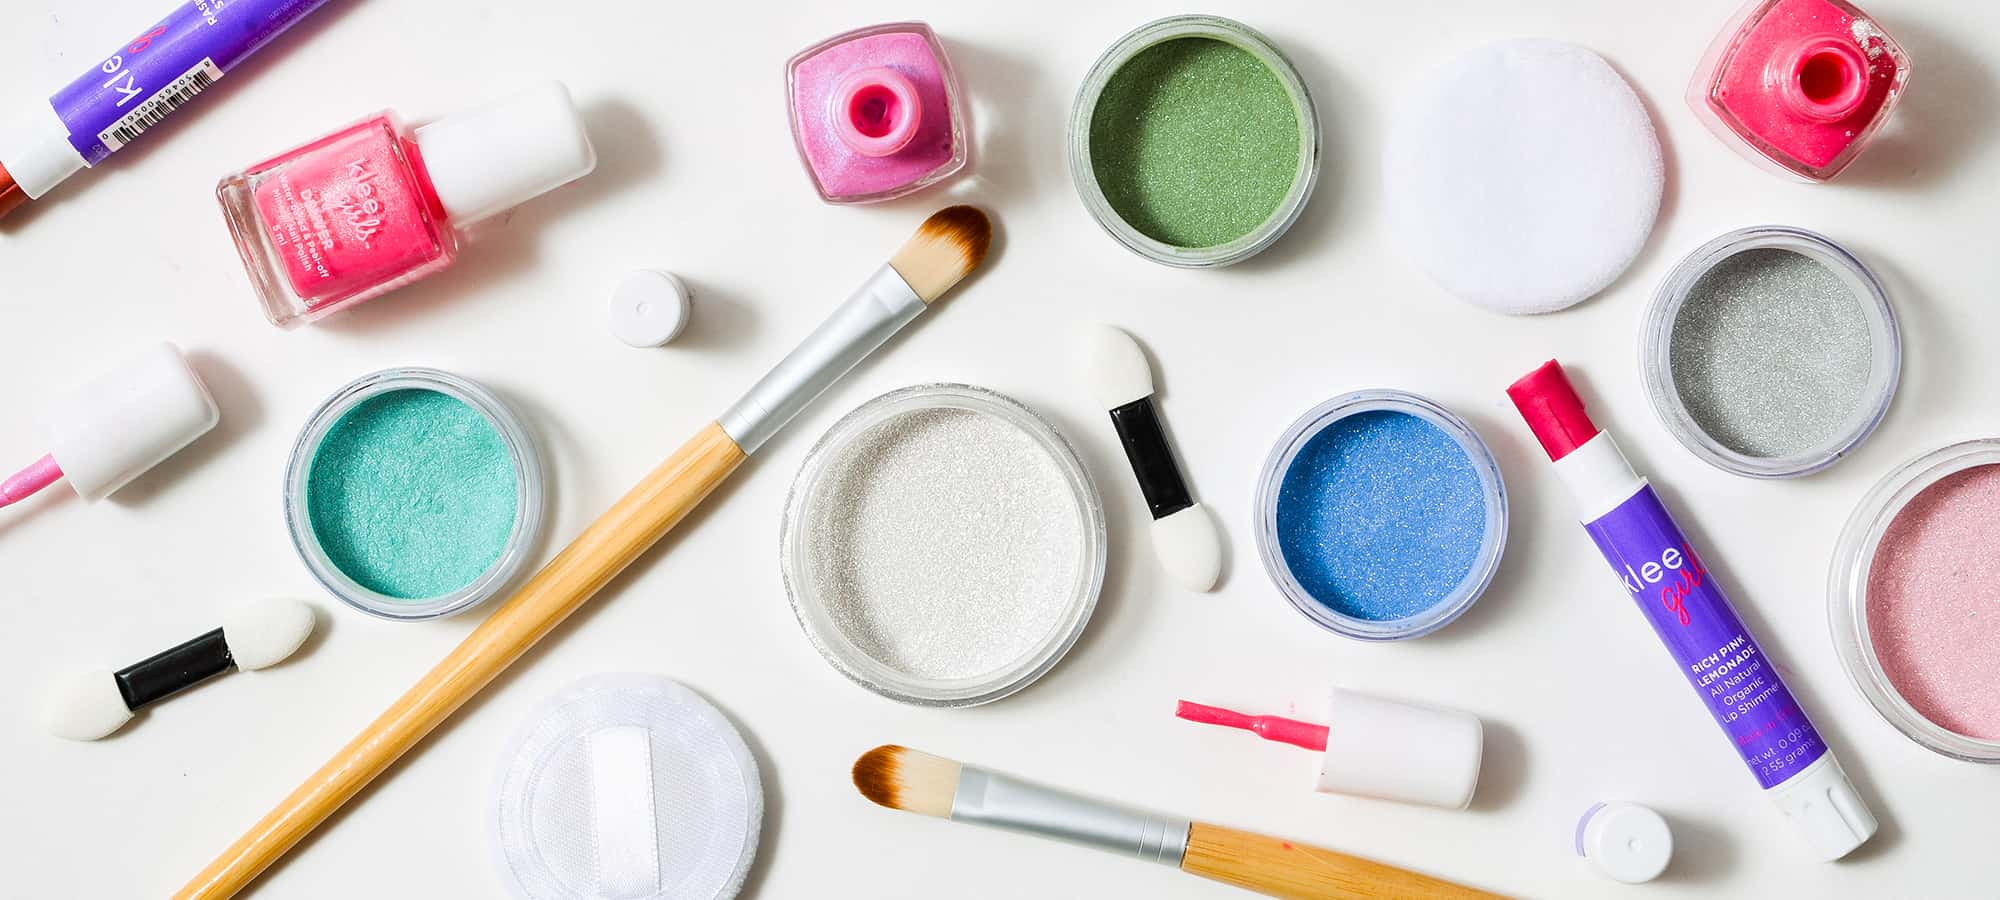 How to choose best play makeup set for kids?